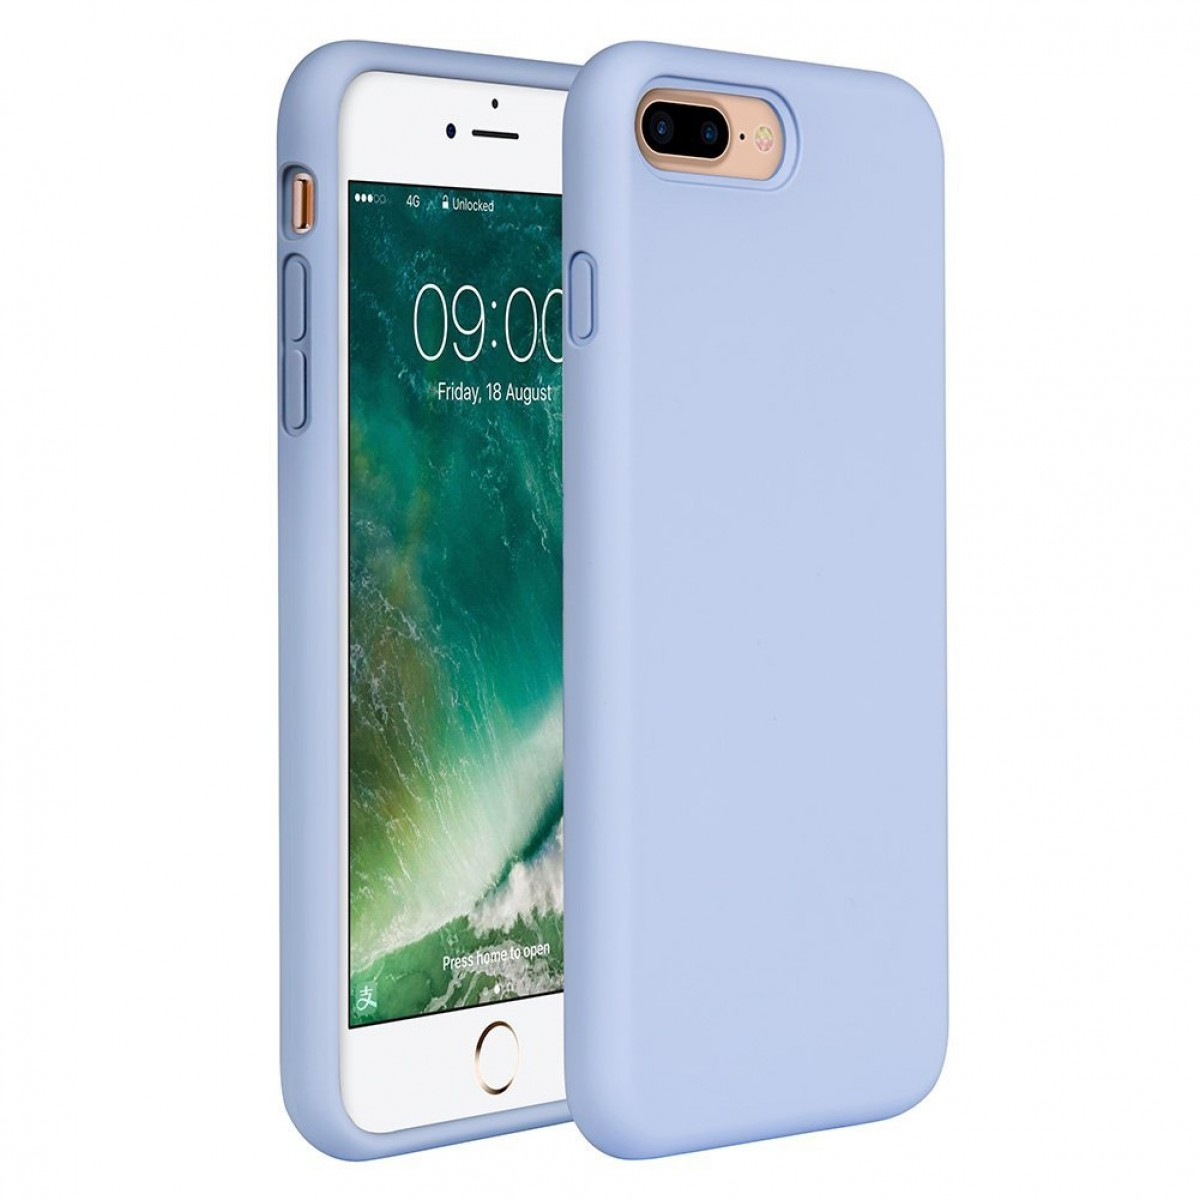 newest c1889 53c69 iPhone 8 Plus Silicone Case, iPhone 7 Plus Silicone Case Miracase Silicone  Gel Rubber Full Body Protection Shockproof Cover Case Drop Protection for  ...